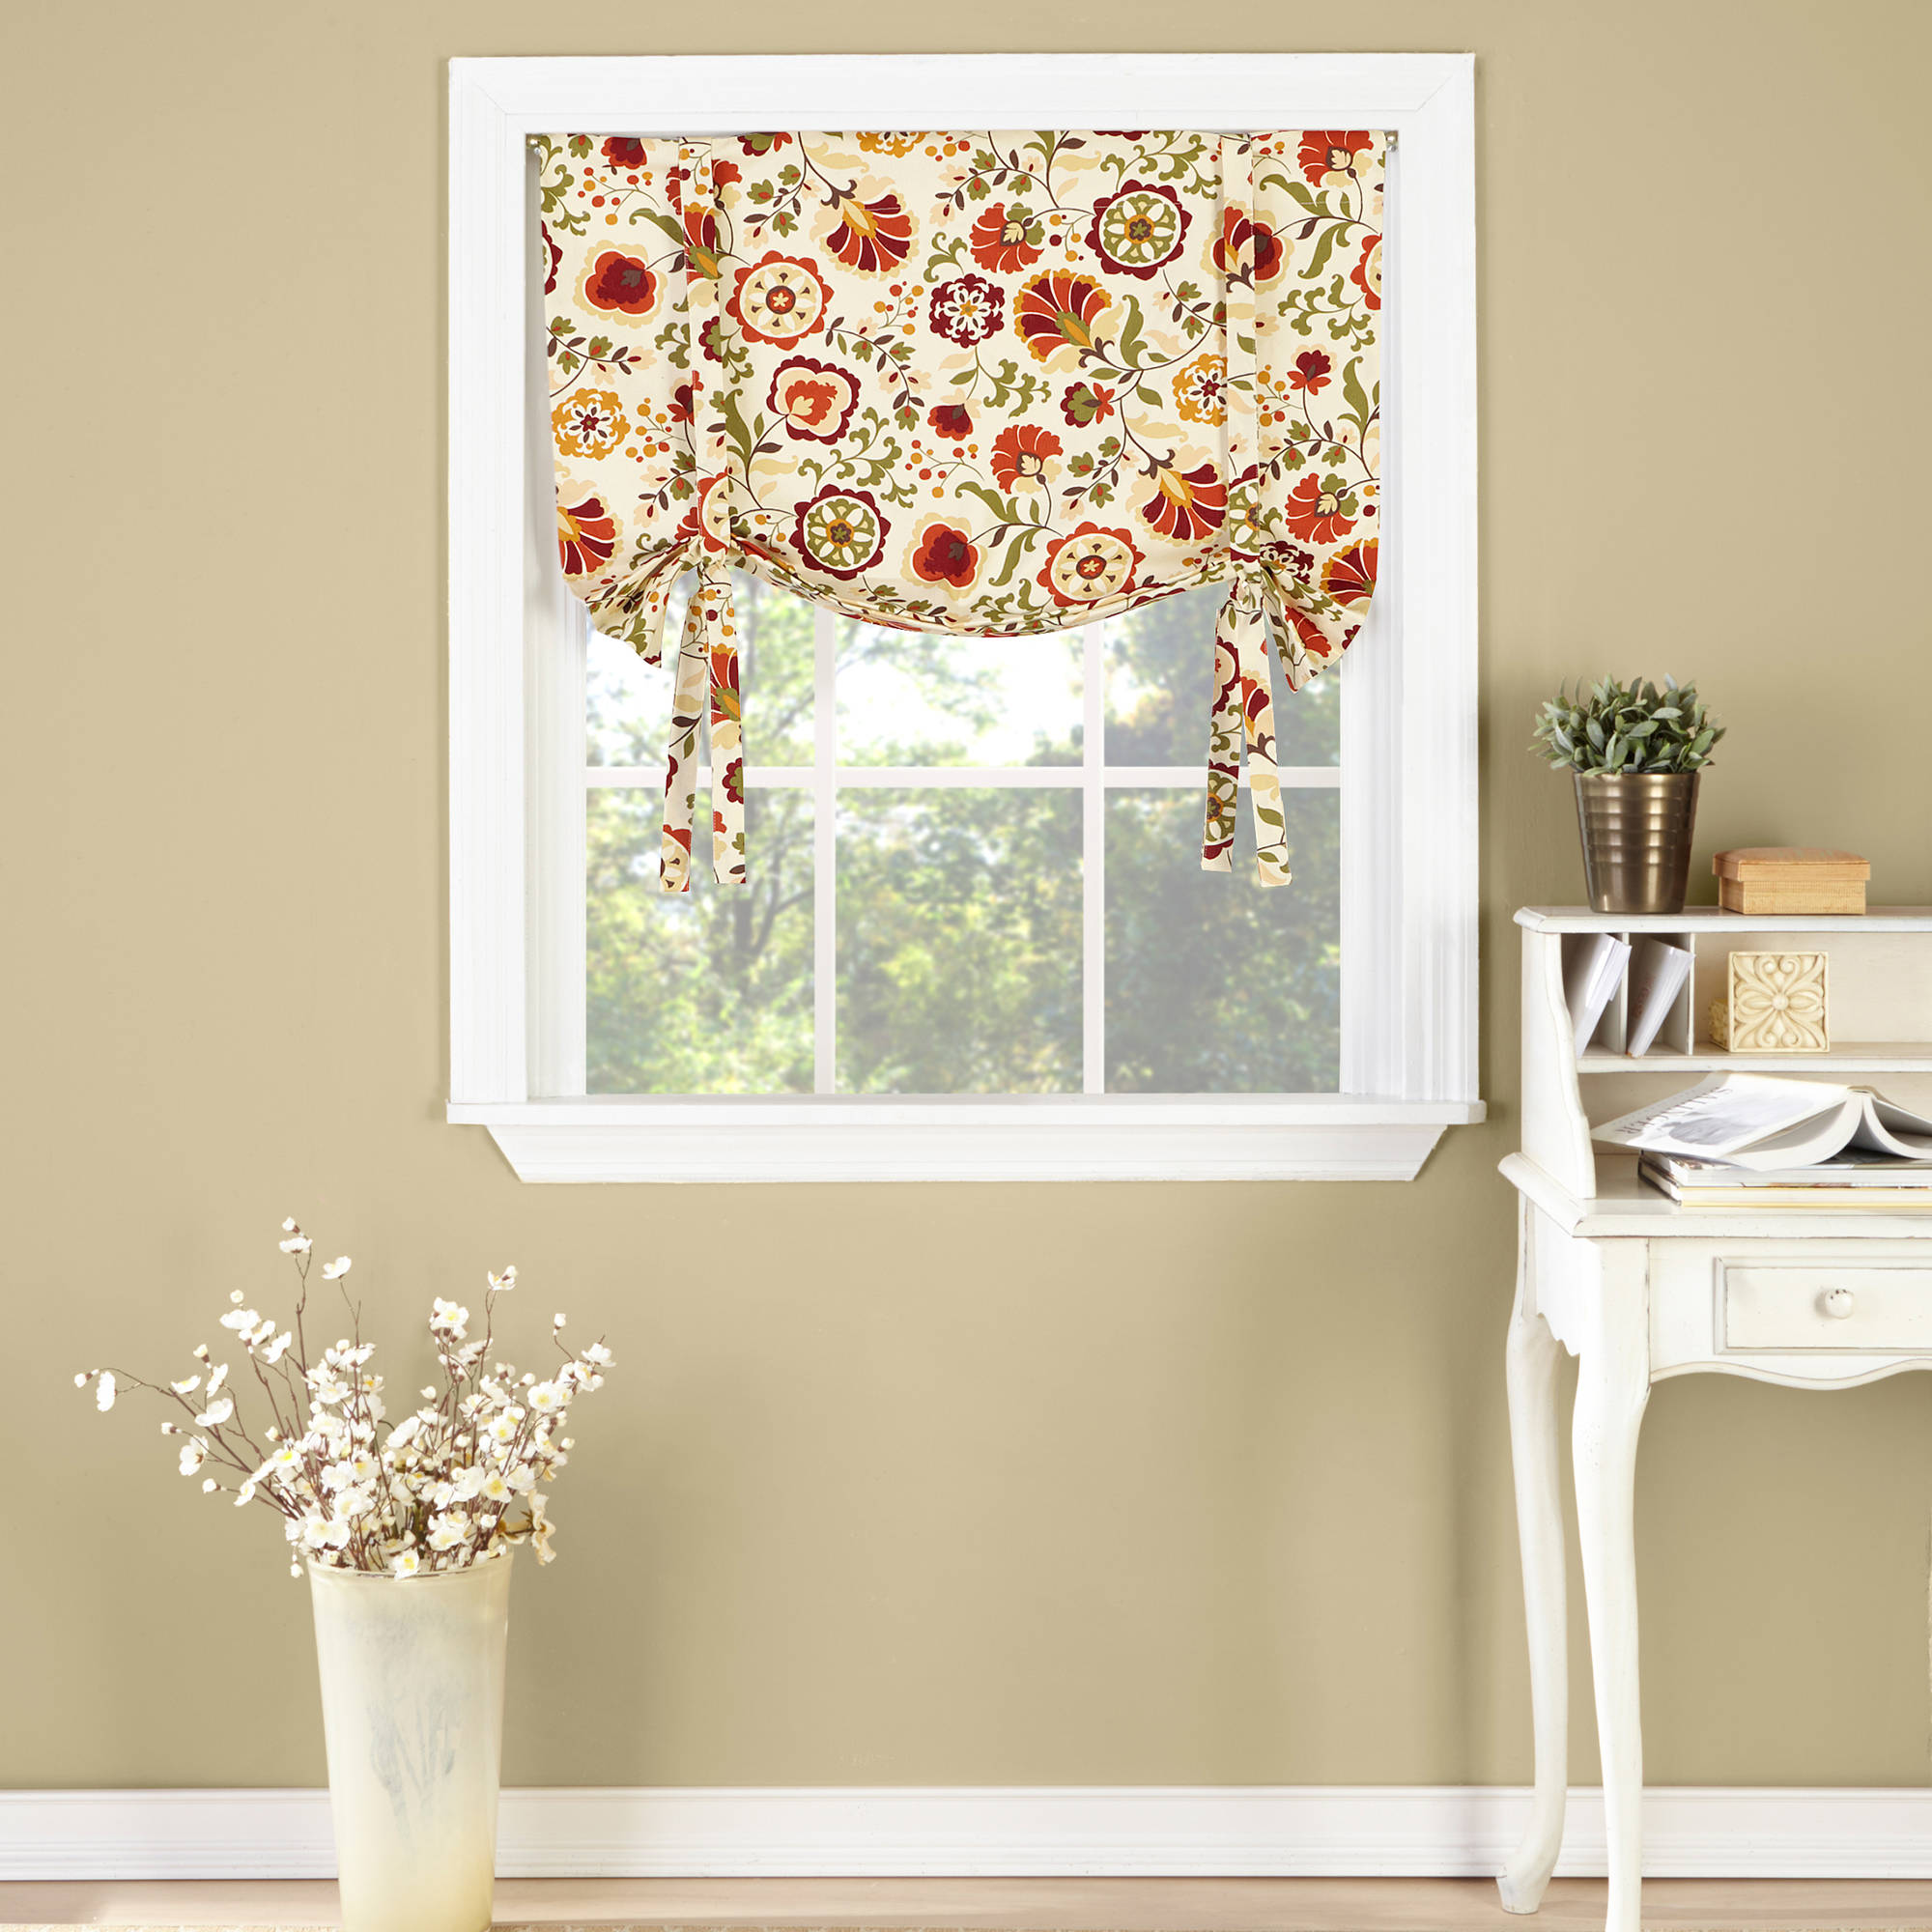 "Belle Maison USA, LTD. Daphne Tie-Up Drape Shade Valance 33"" x 29"" by Belle Maison USA, LTD."